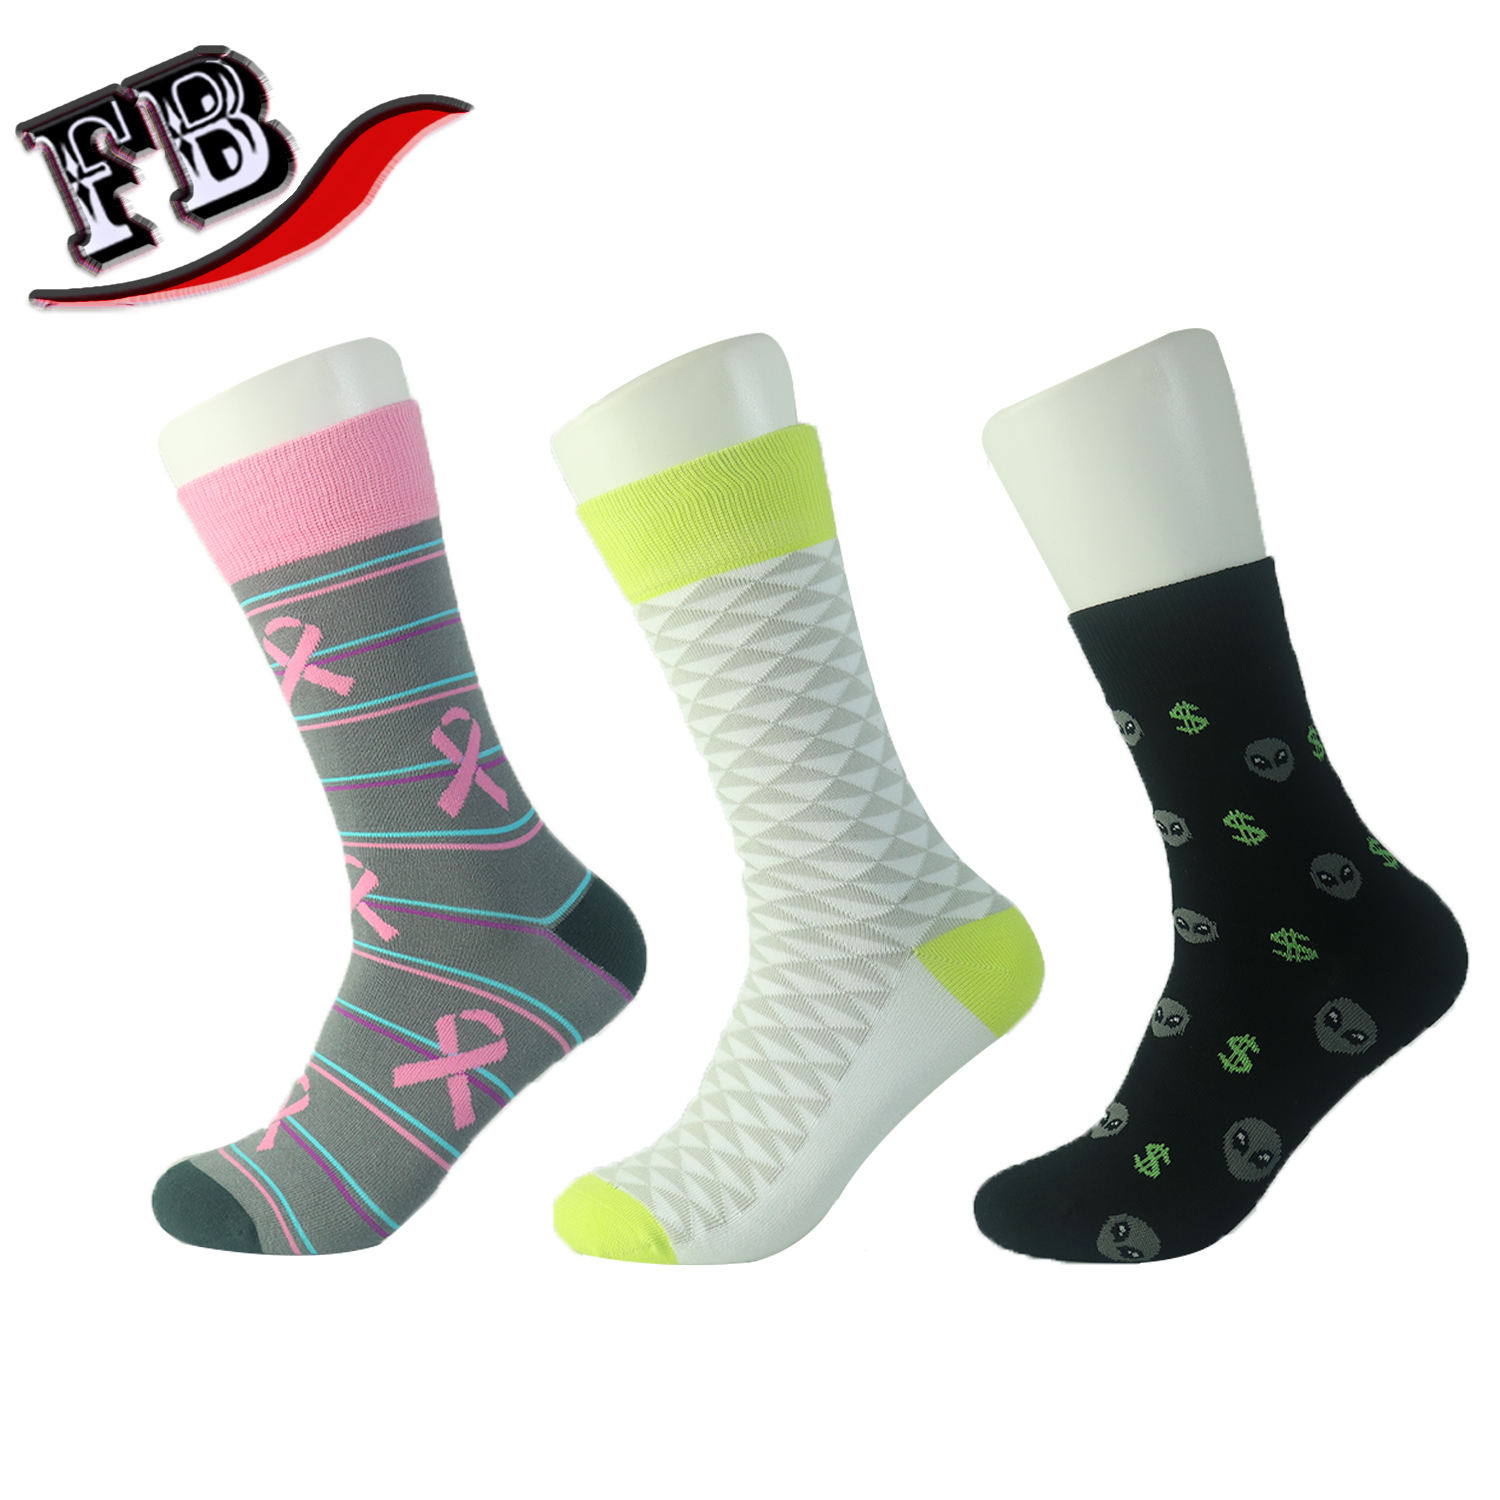 Spring Season and Cotton Material 100% Export Quality Tube Man Socks